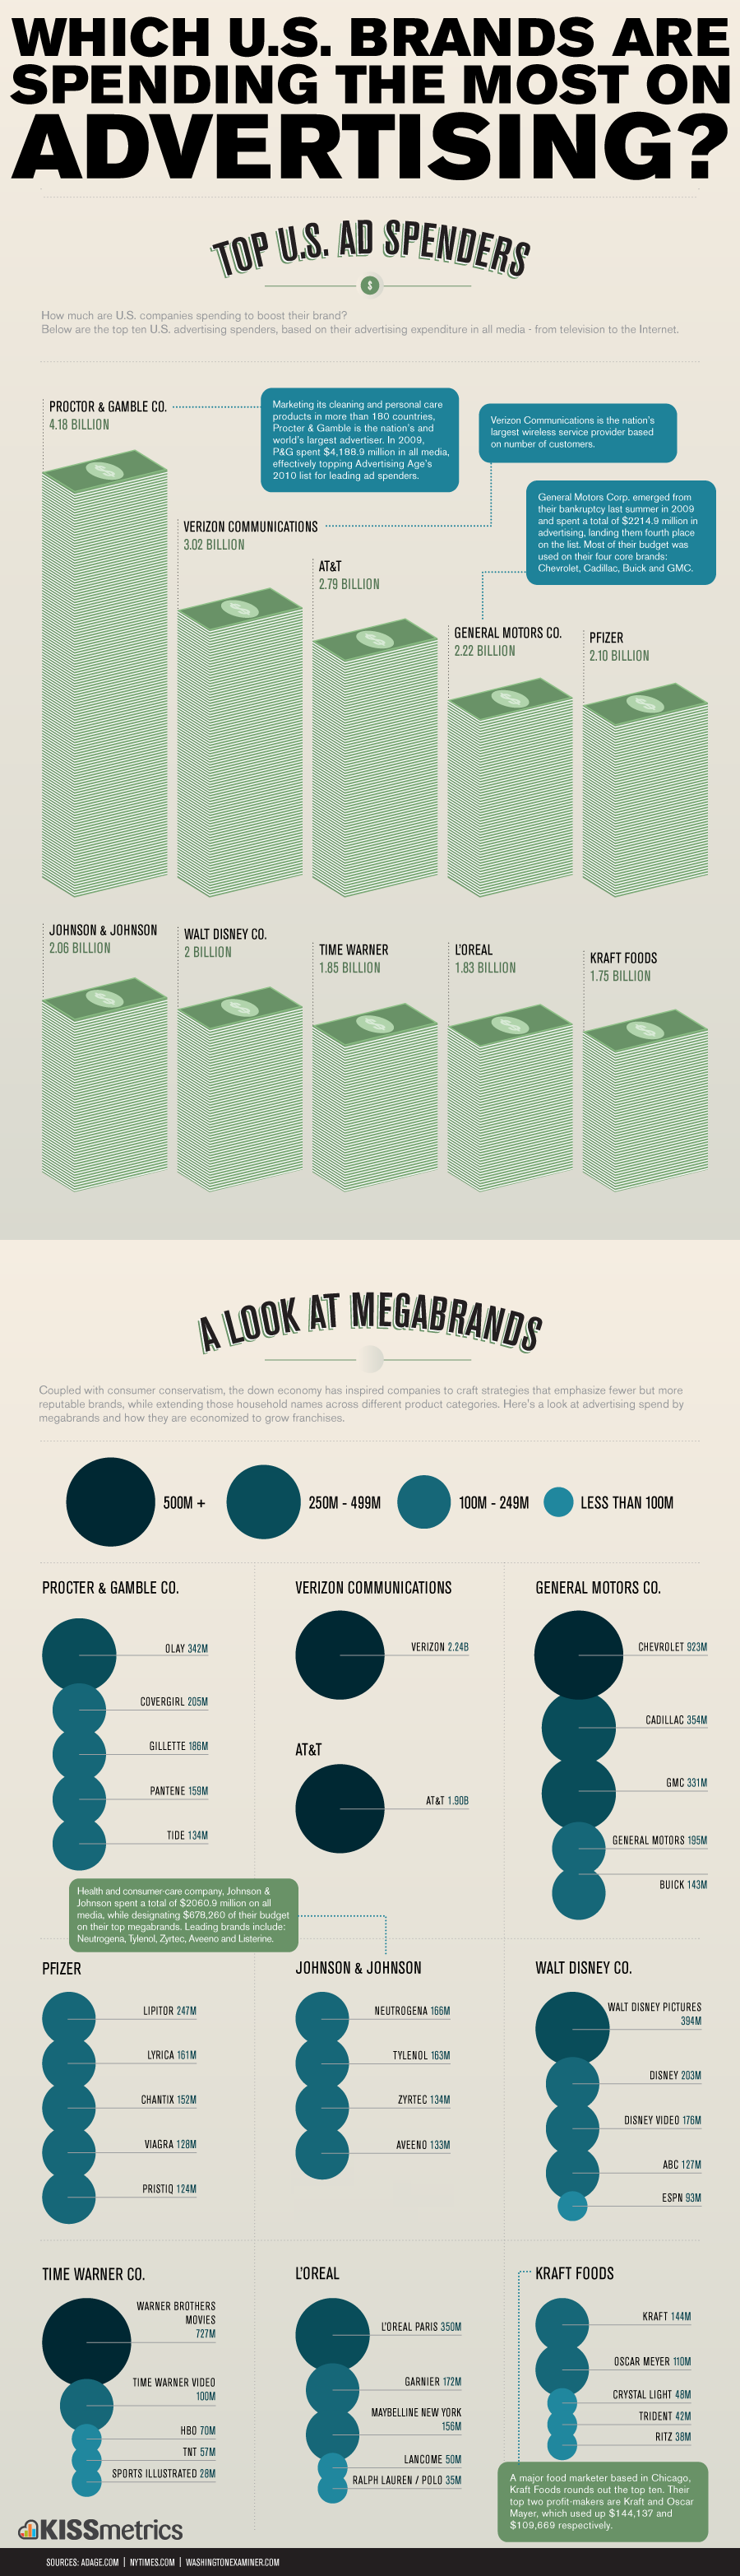 Advertising-Infographics-Which-US-Brands-Are-Spending-the-Most Advertising Infographics : Which U.S. Brands Are Spending the Most on Advertising?